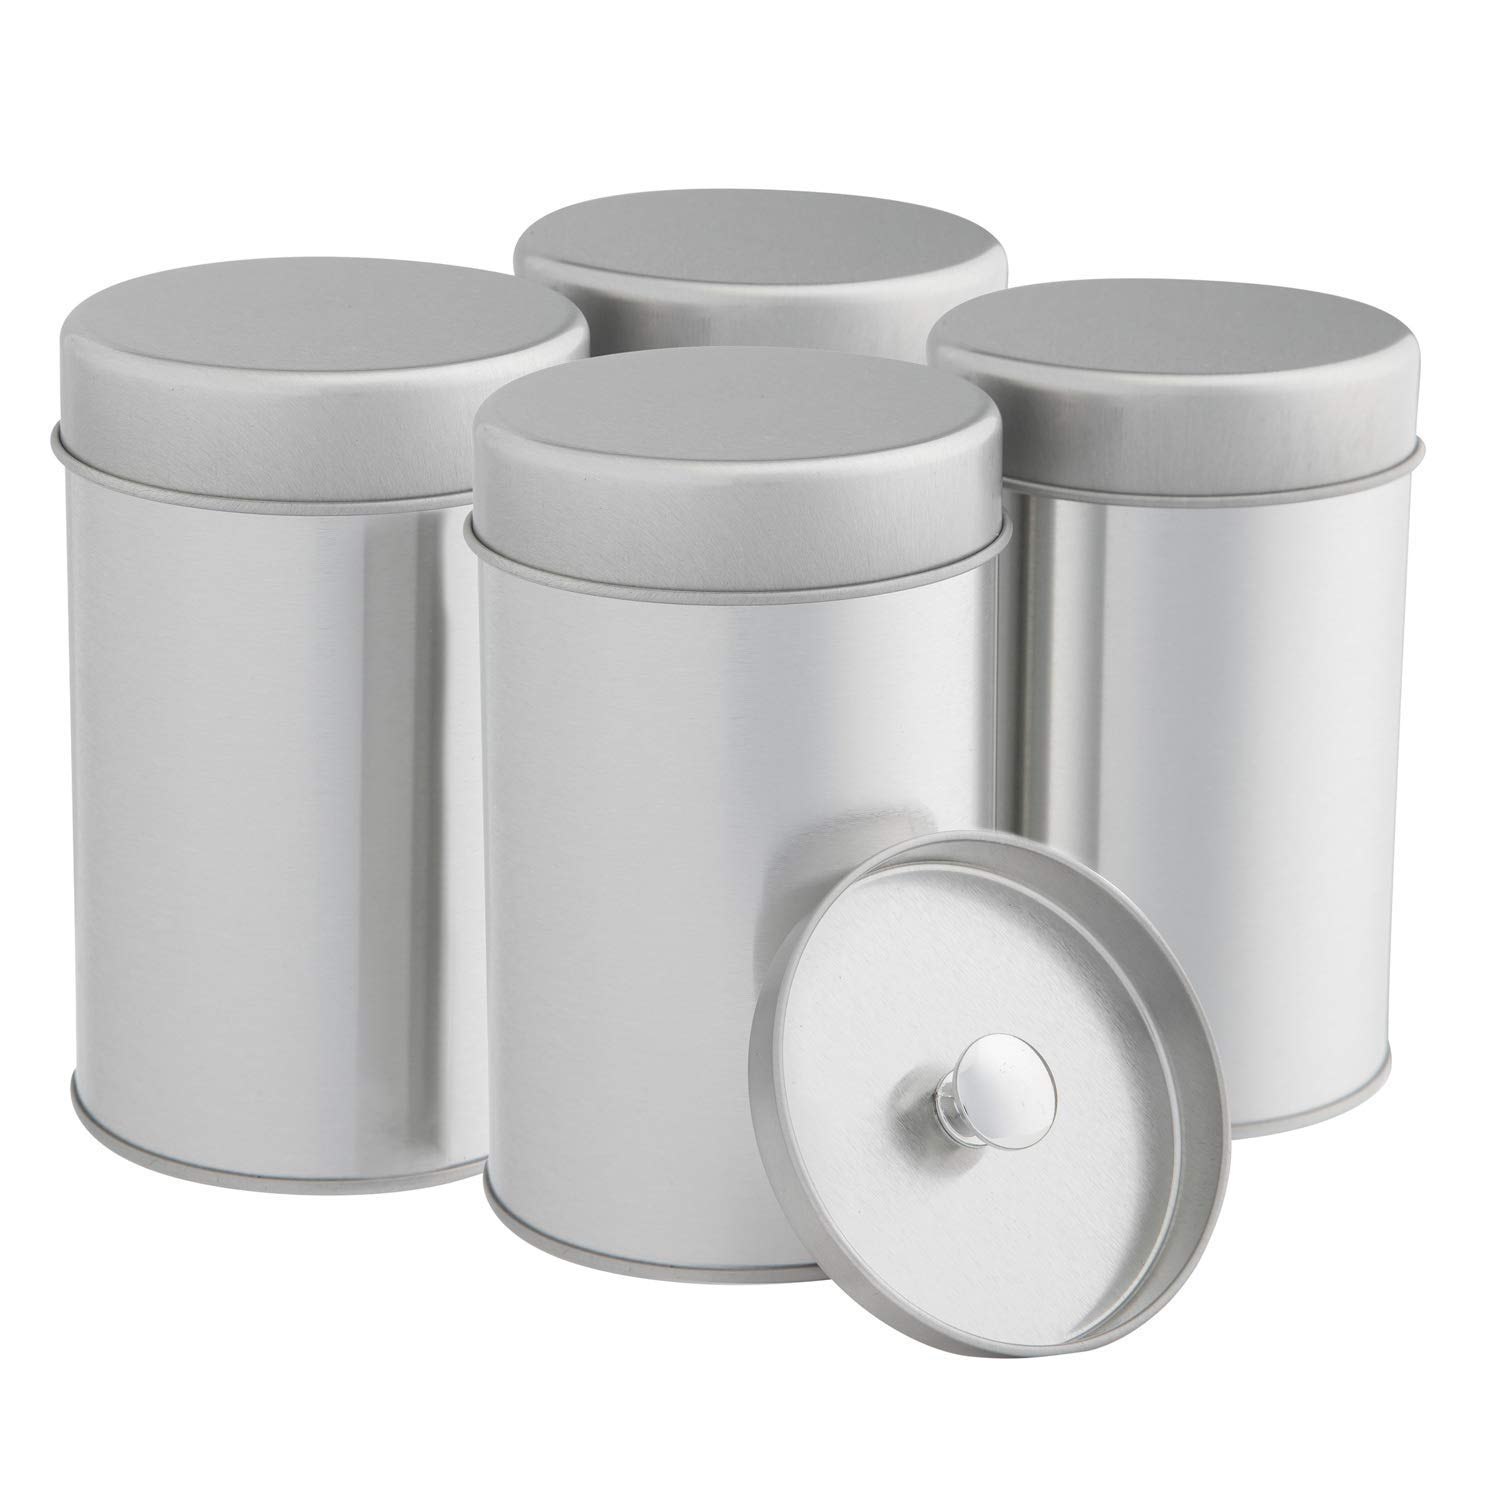 Tea tins canister set with airtight double lids for loose tea small kitchen canisters for tea coffee sugar storage loose leaf tea tin containers by